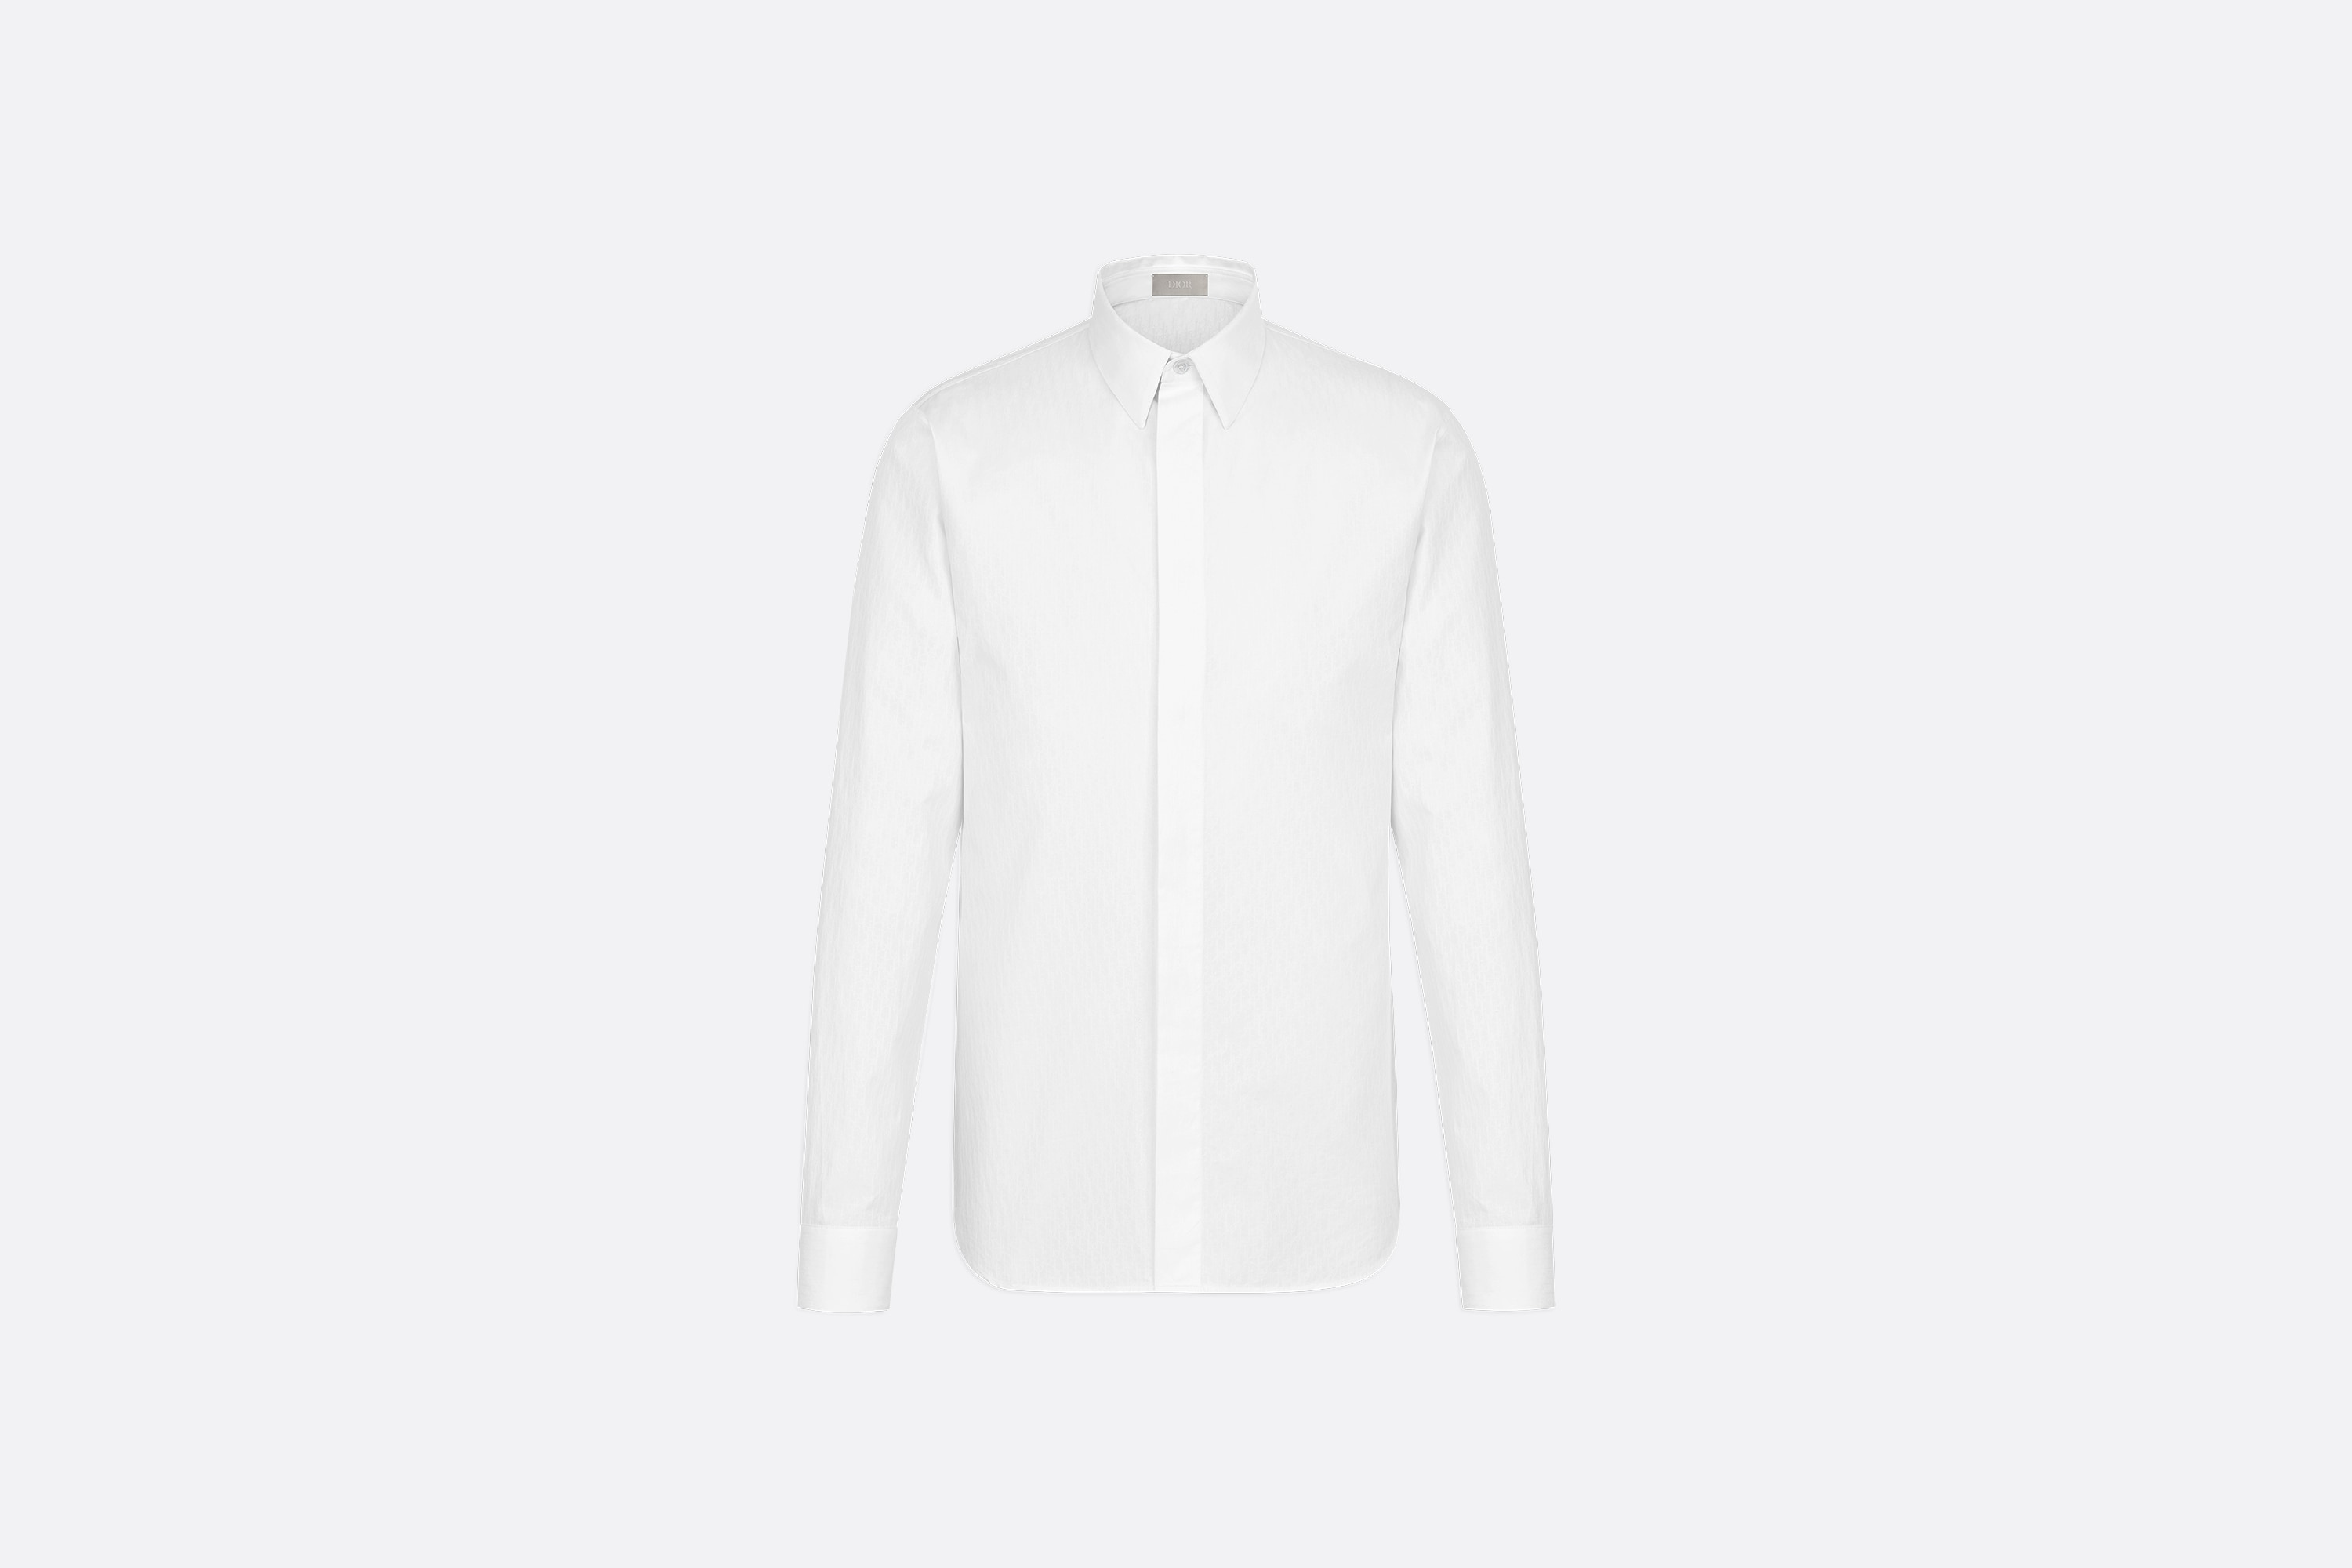 Dior Oblique Shirt Front view Open gallery